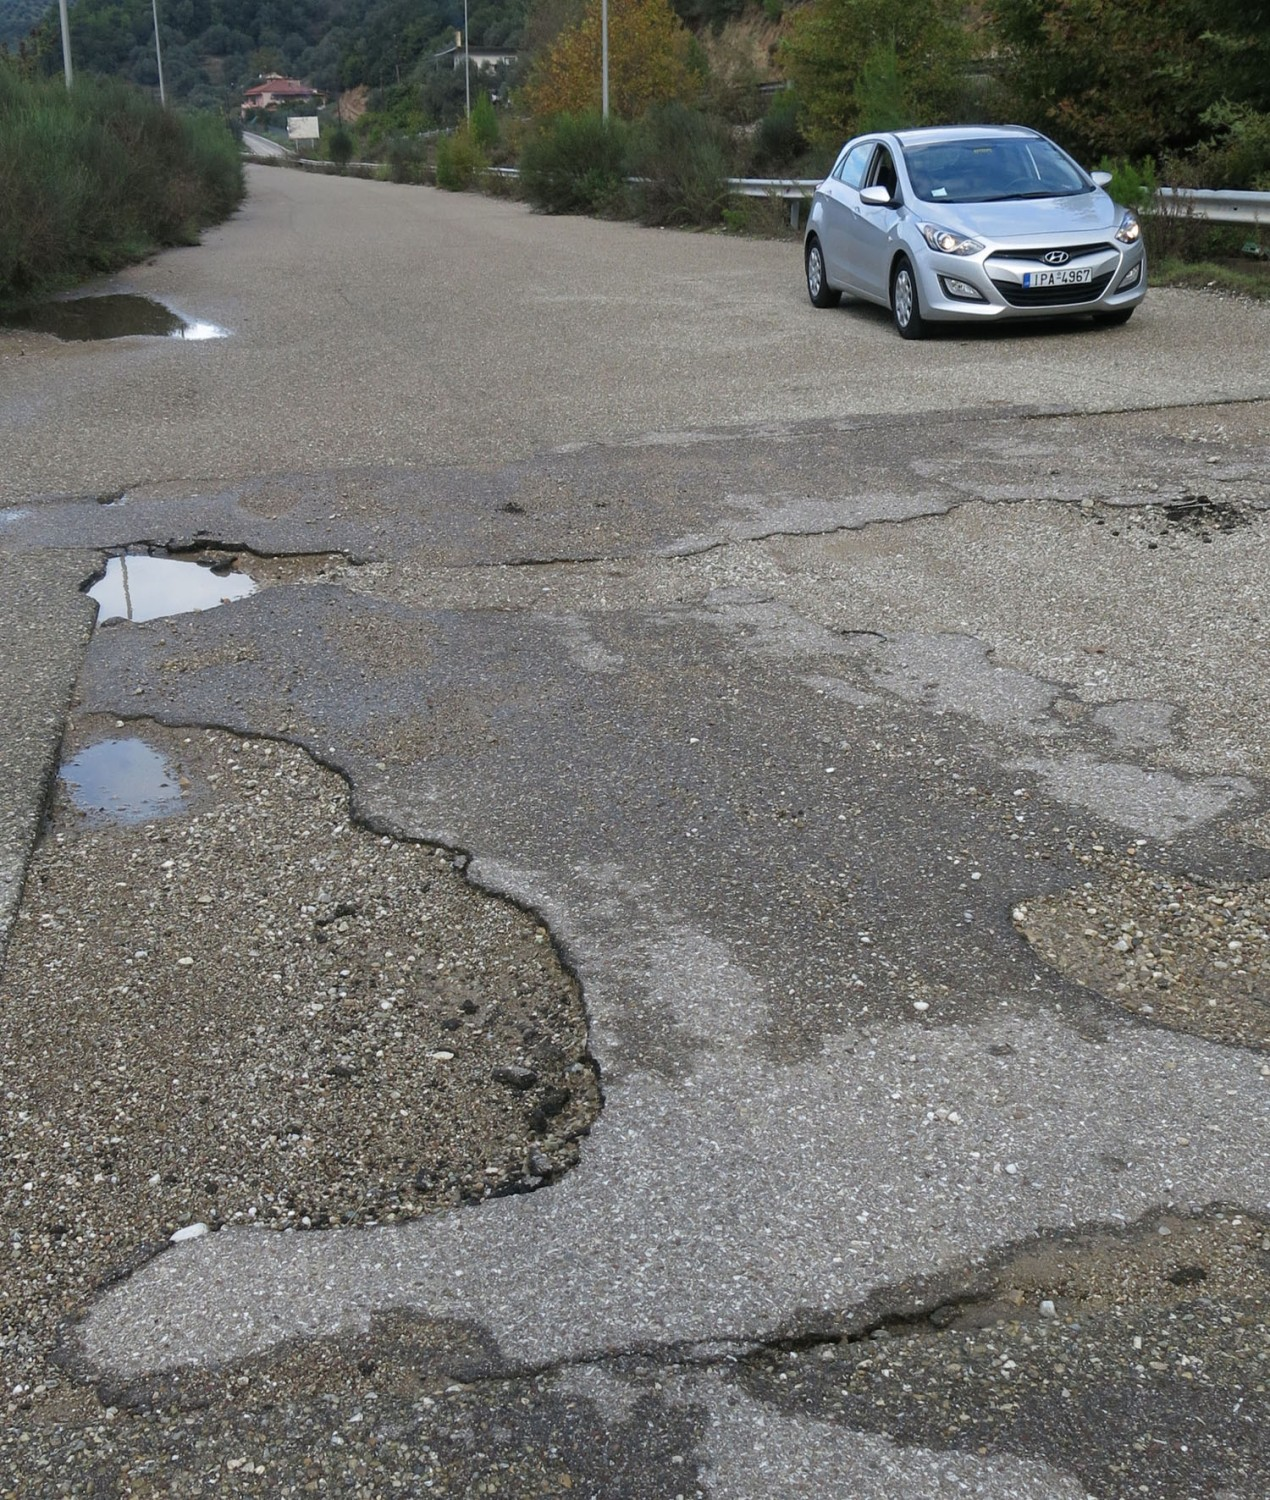 Greece-On-The-Road-Potholes